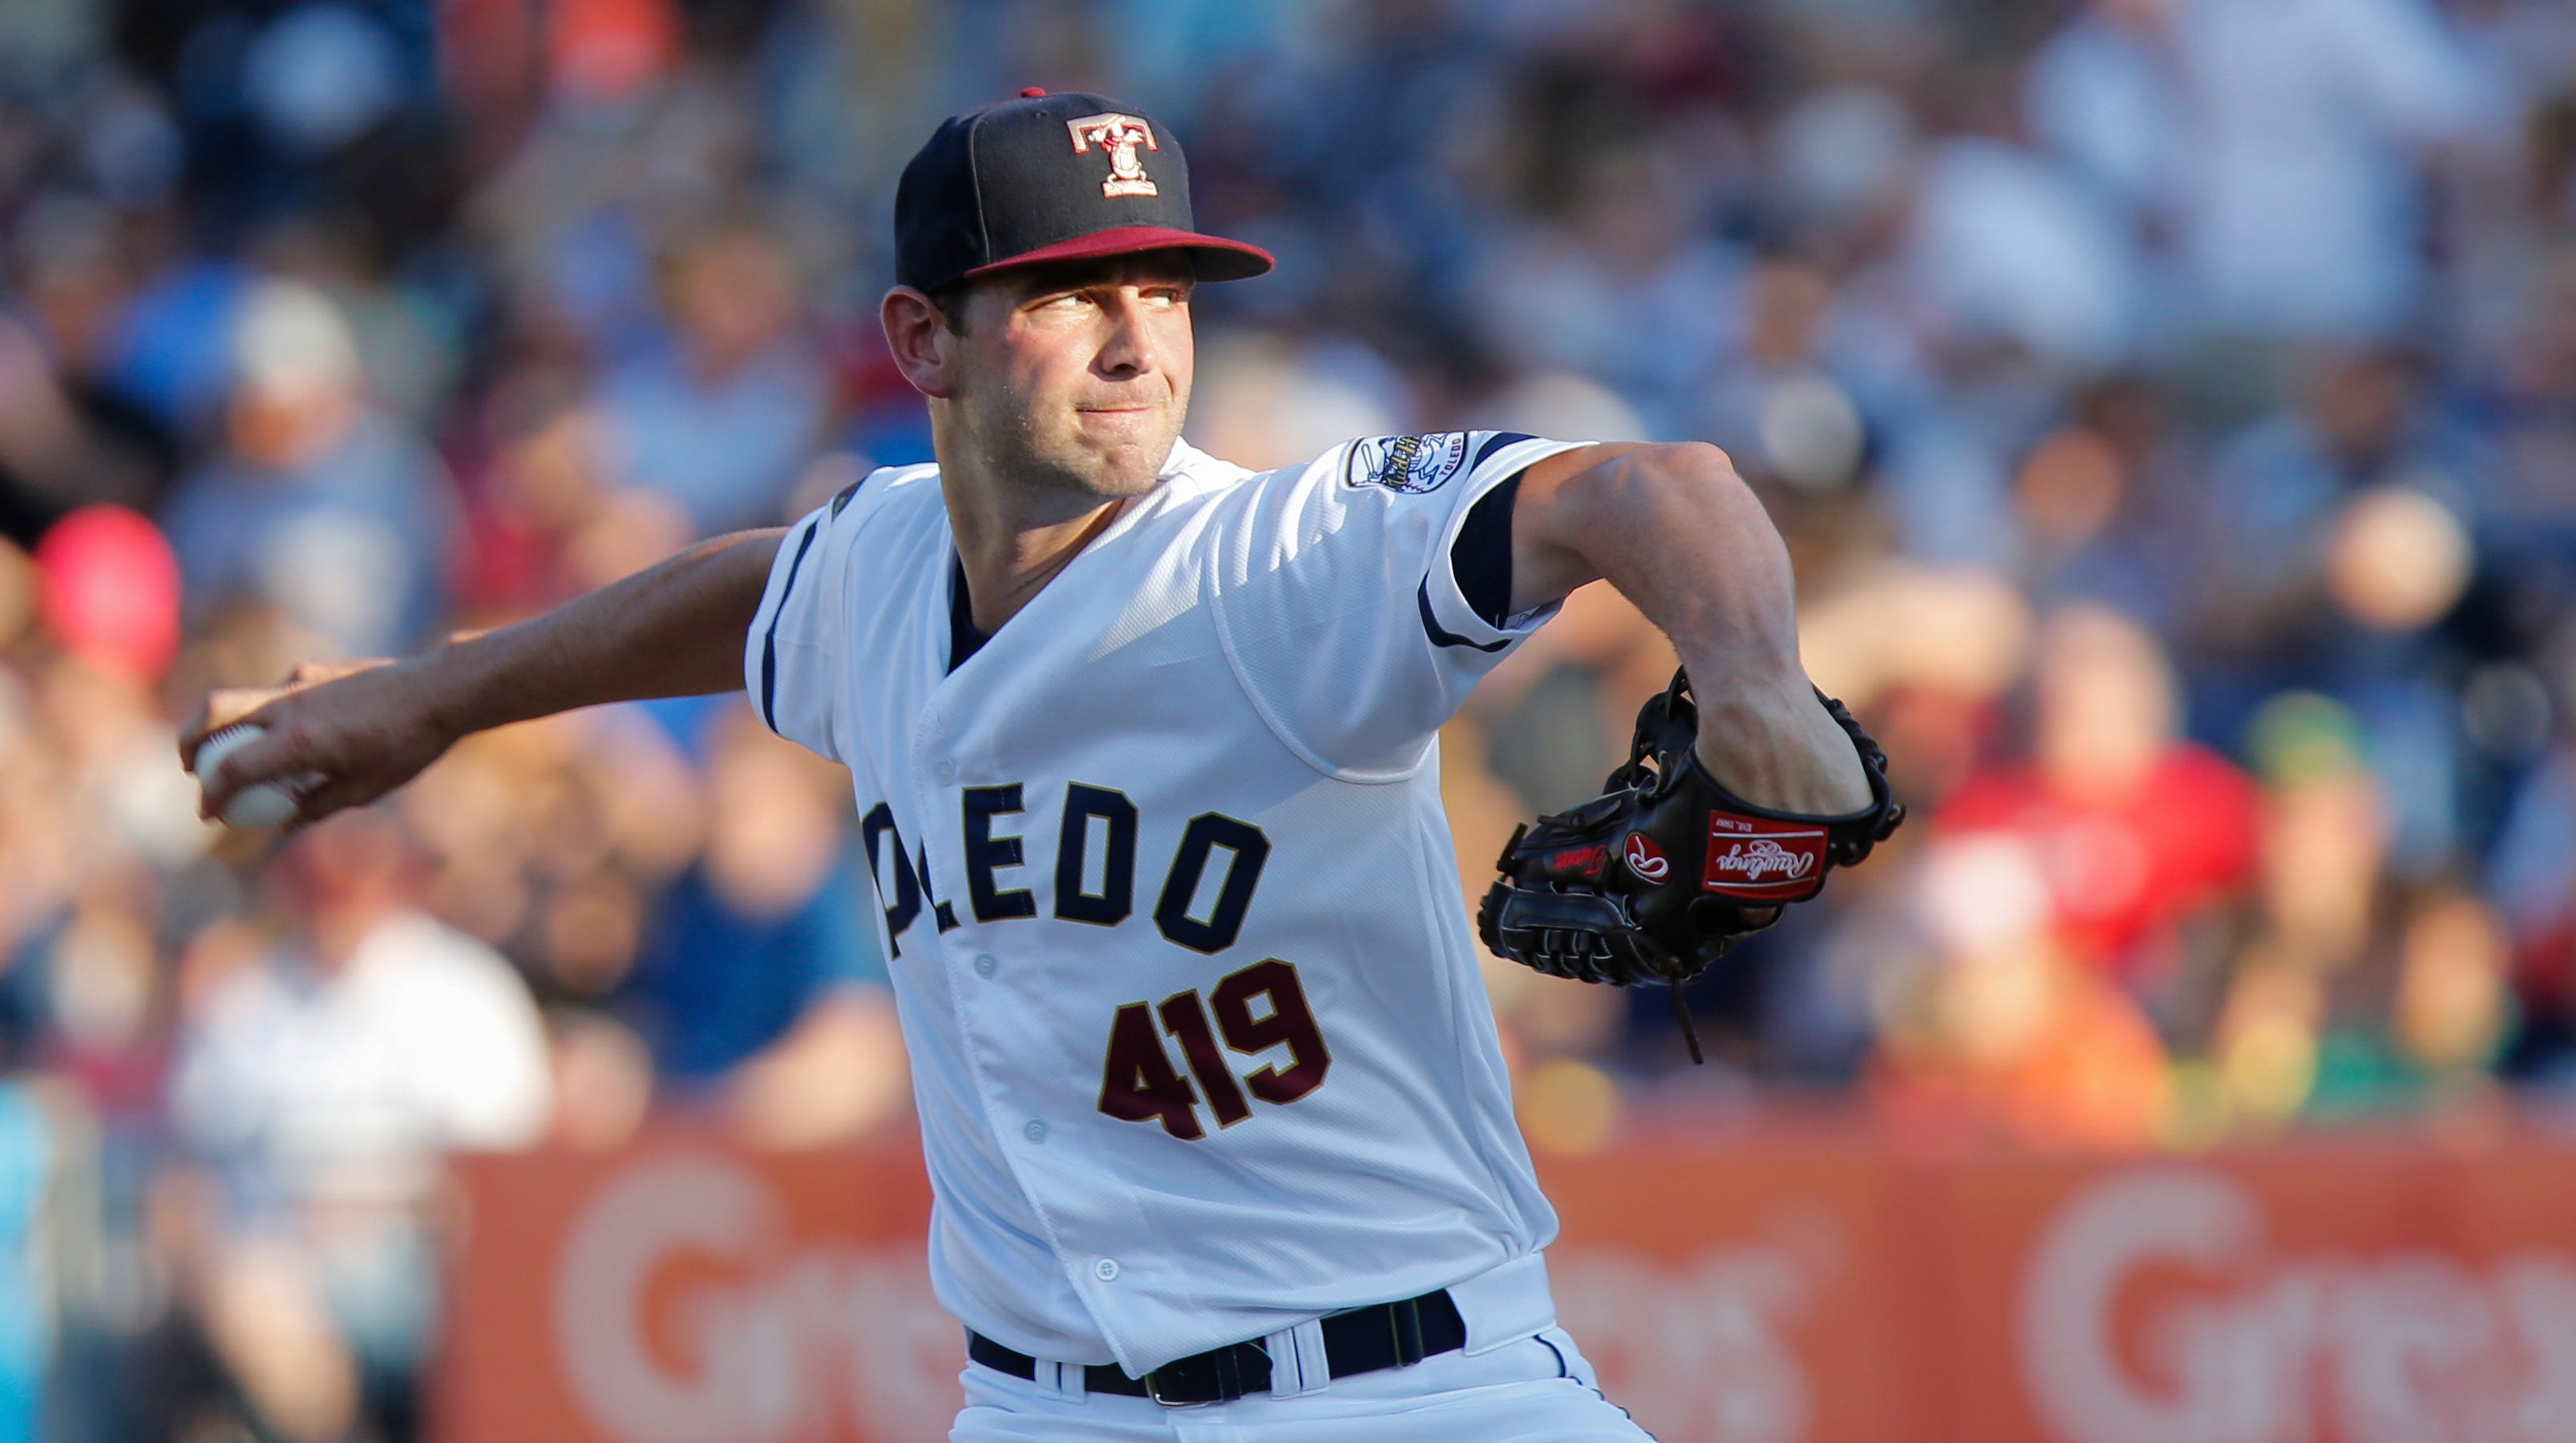 Toledo Mud Hens starting pitcher Jacob Turner delivers a pitch during a game between the Louisville Bats and the Toledo Mud Hens on June 16.